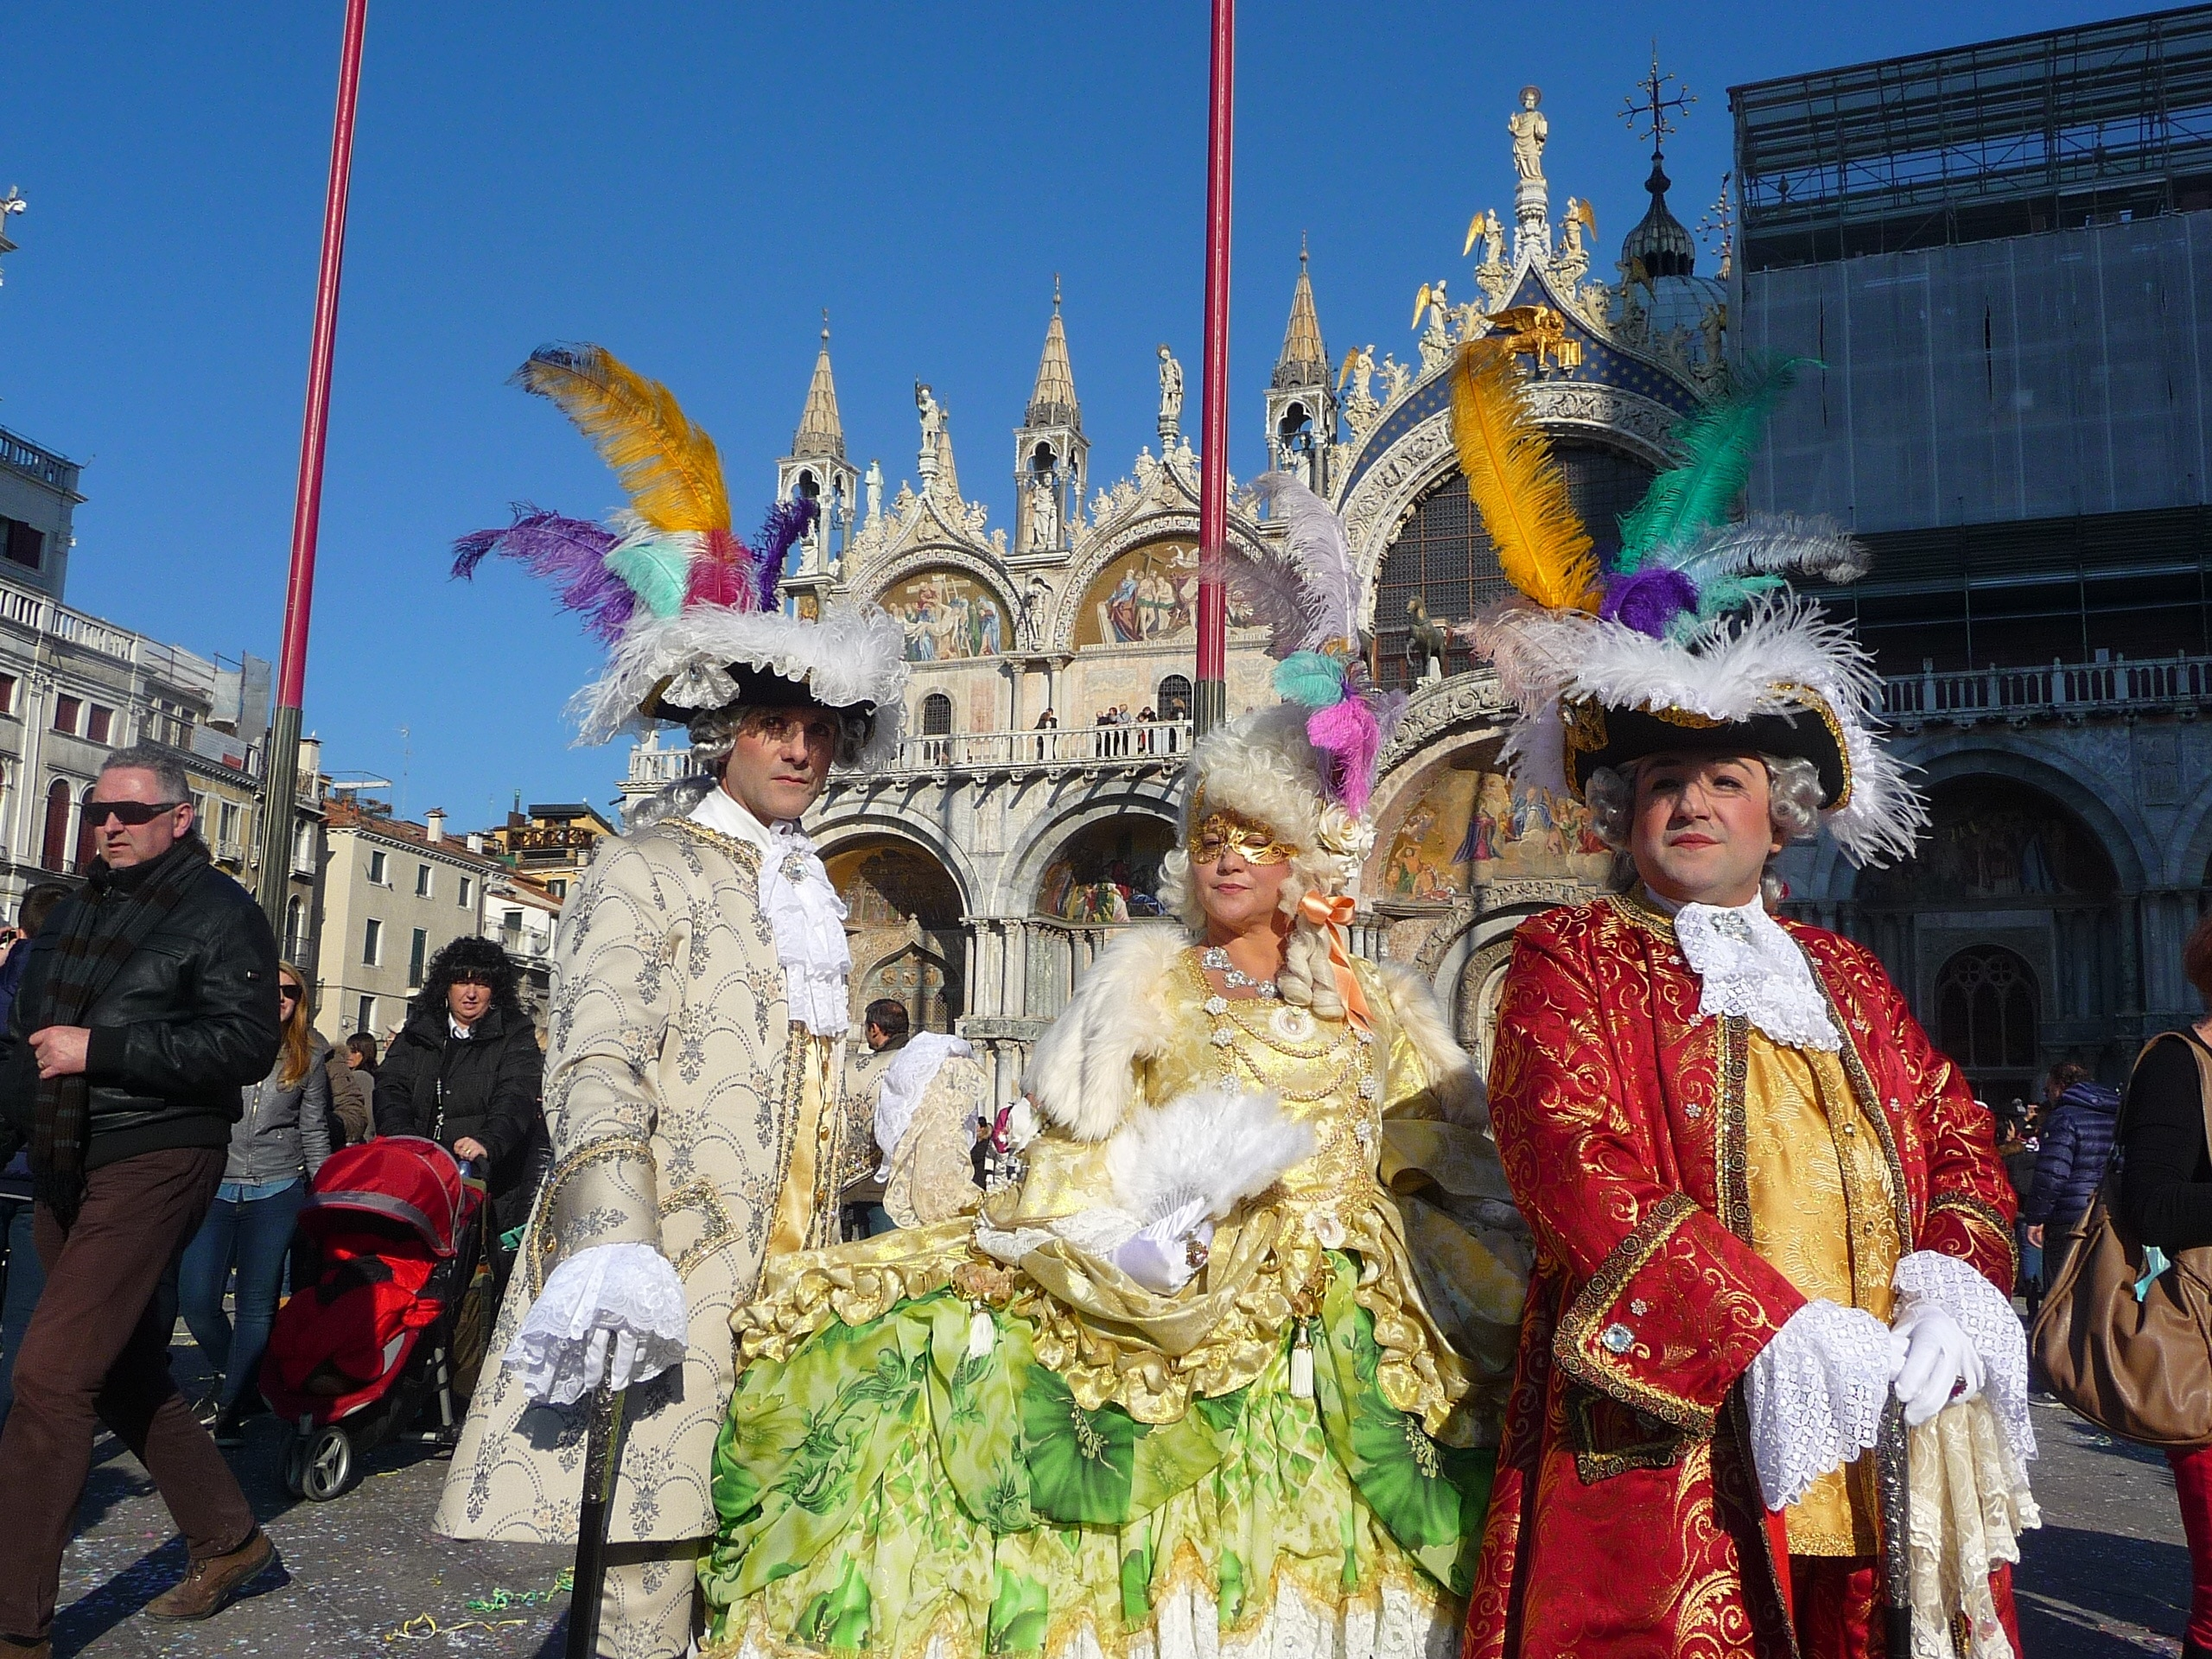 Venice, Carnival, Carnival Of Venice, blue, people free image